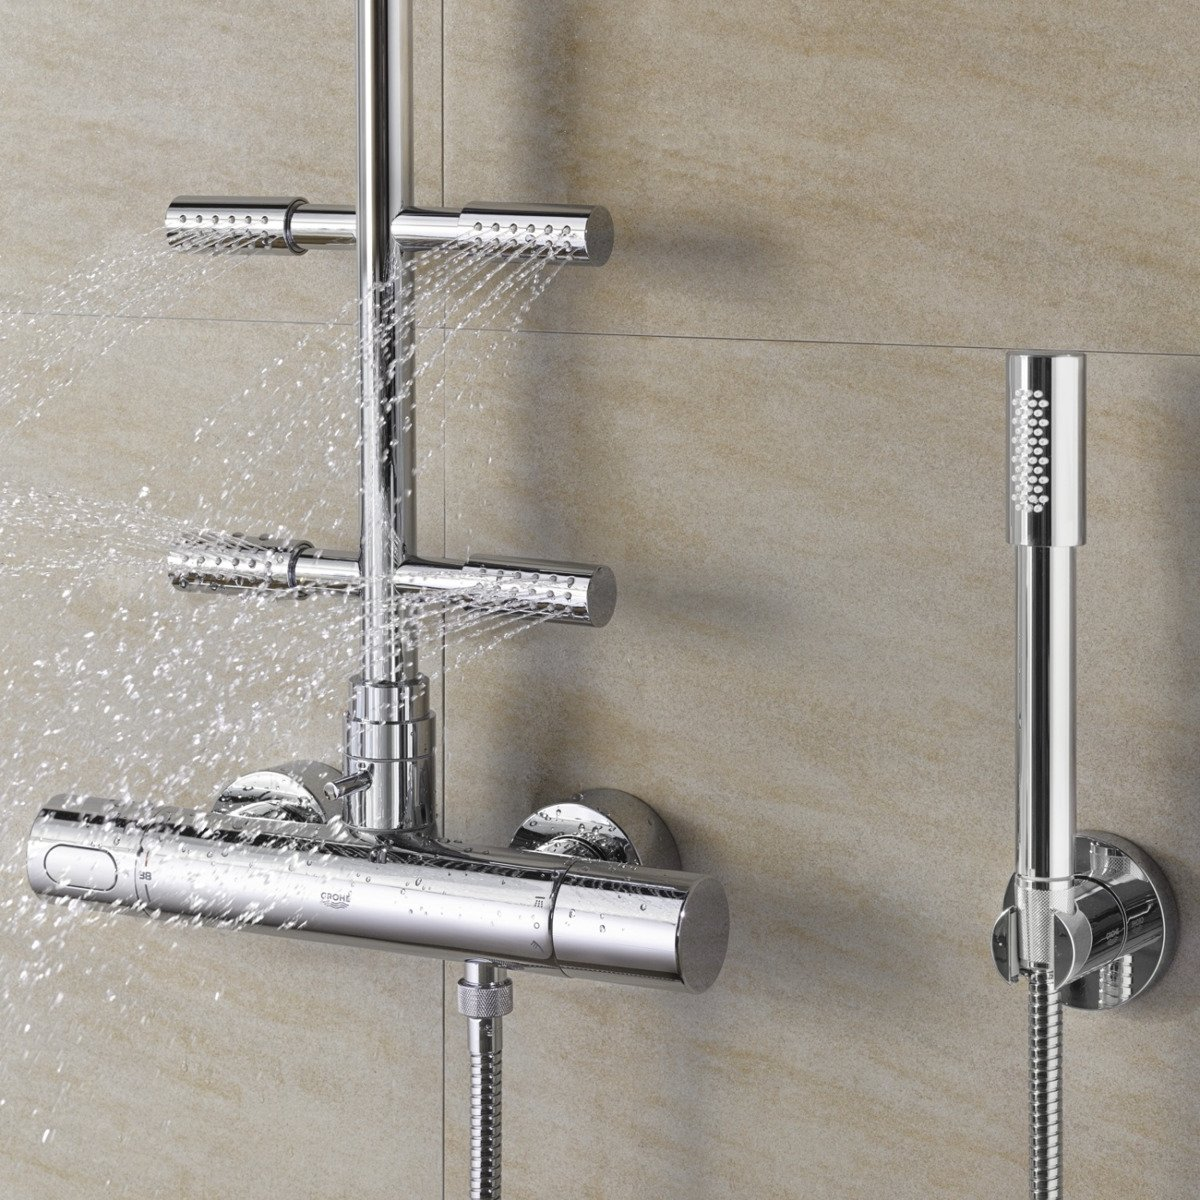 grohe rainshower set de douche avec thermostat de douche avec aquadimmer 3000 et douche de t te. Black Bedroom Furniture Sets. Home Design Ideas